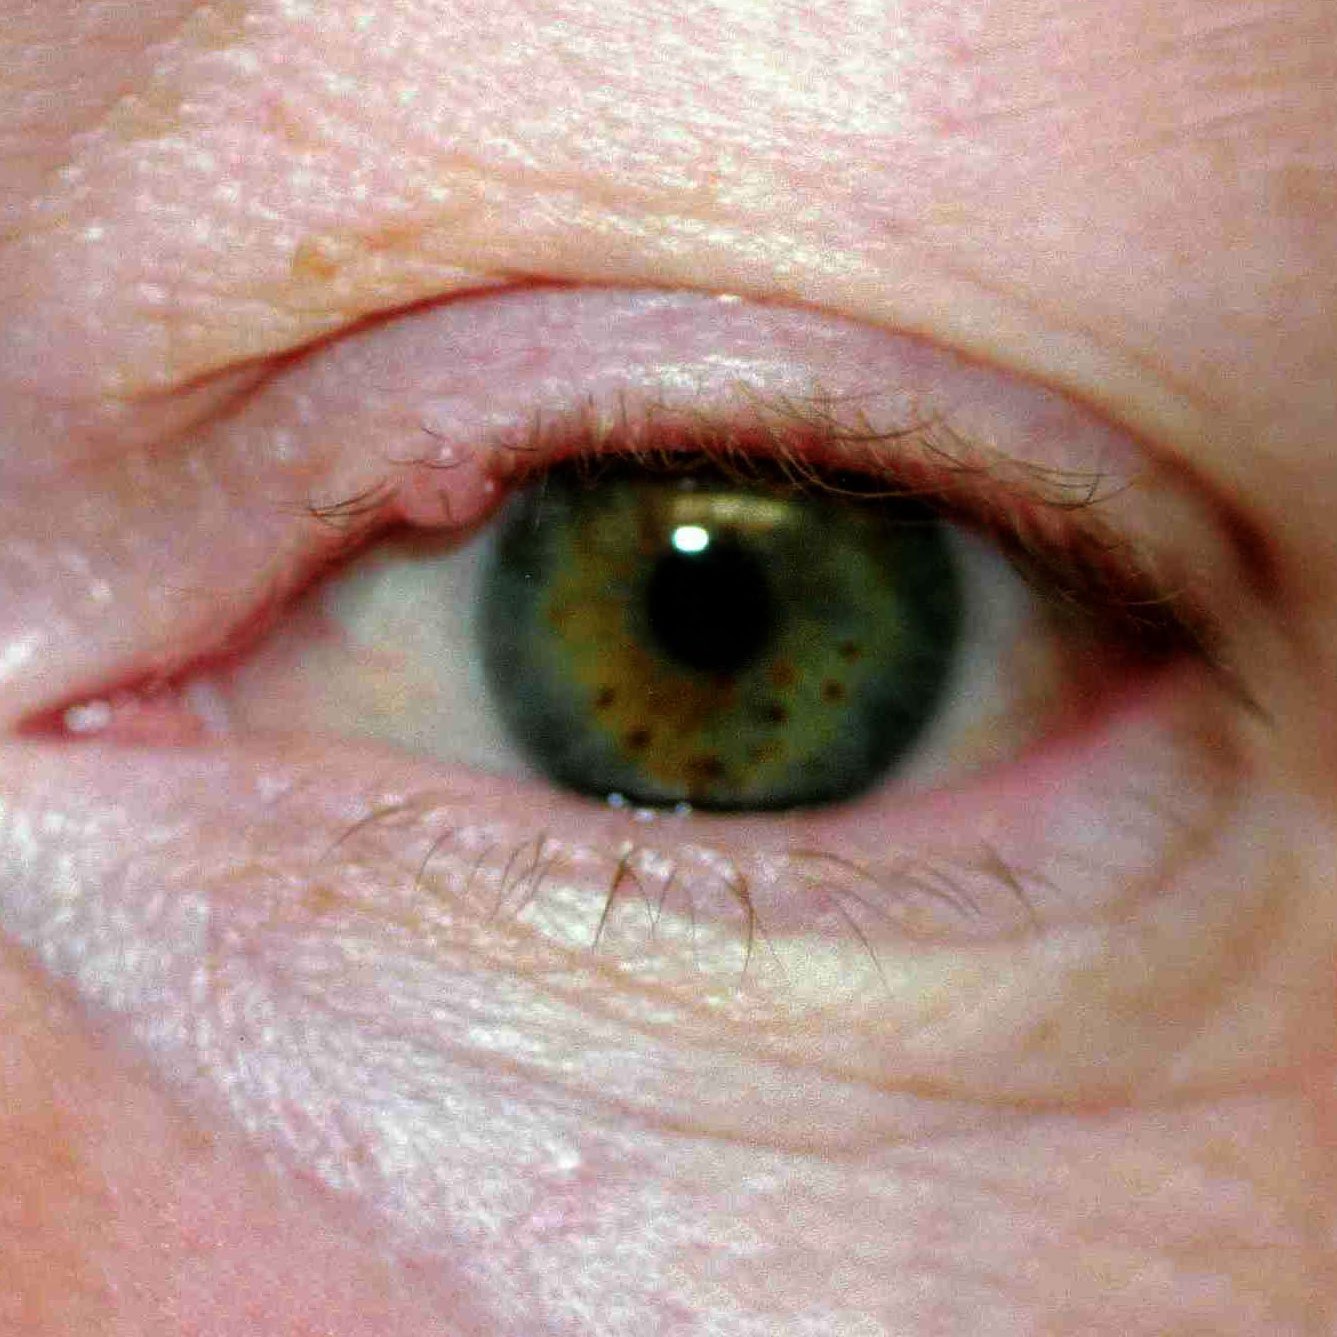 Dr Archie Lamb | Eyelid Cysts and Lesions